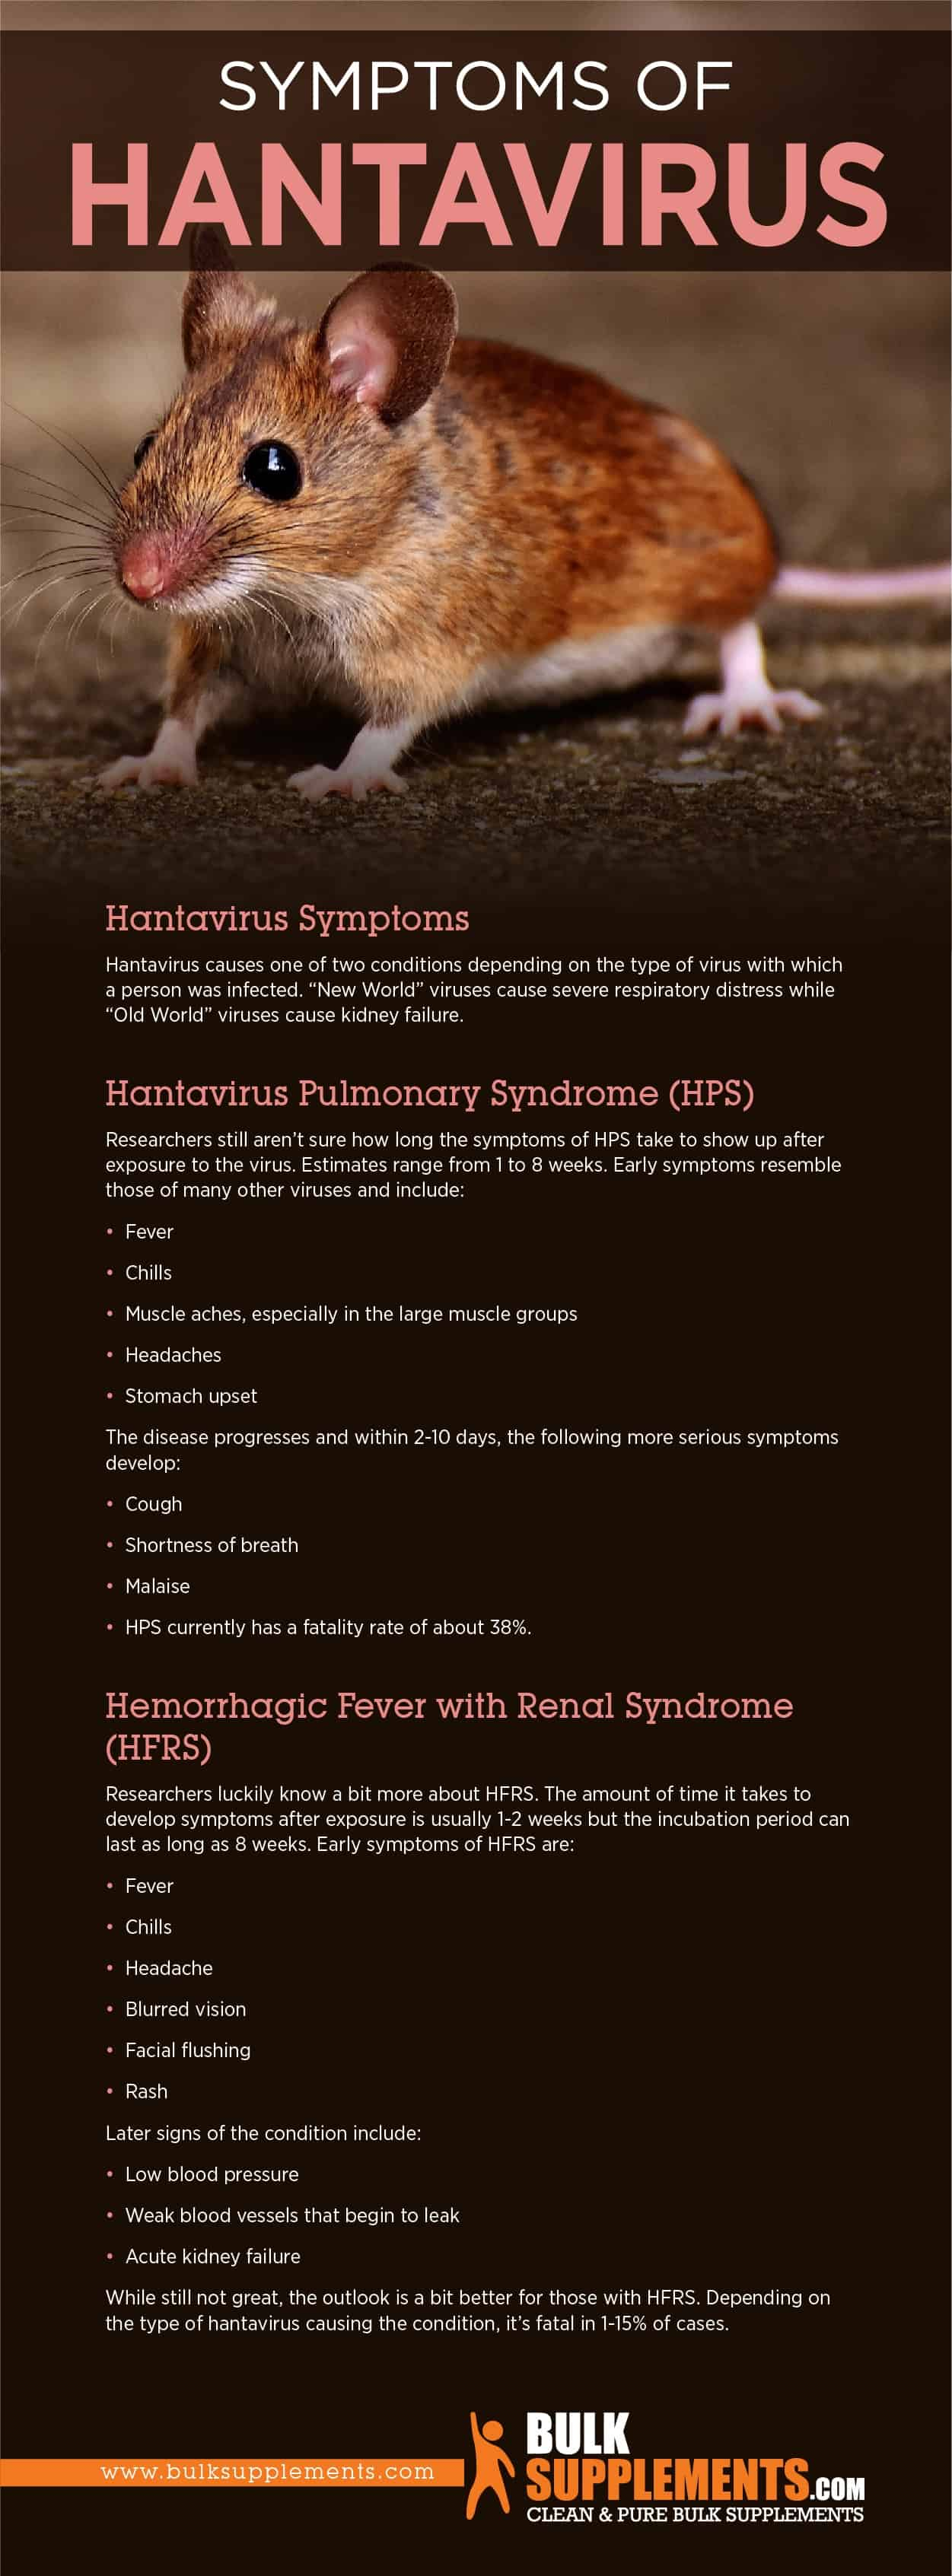 Hantavirus: Symptoms, Causes & Treatment | BulkSupplements.com